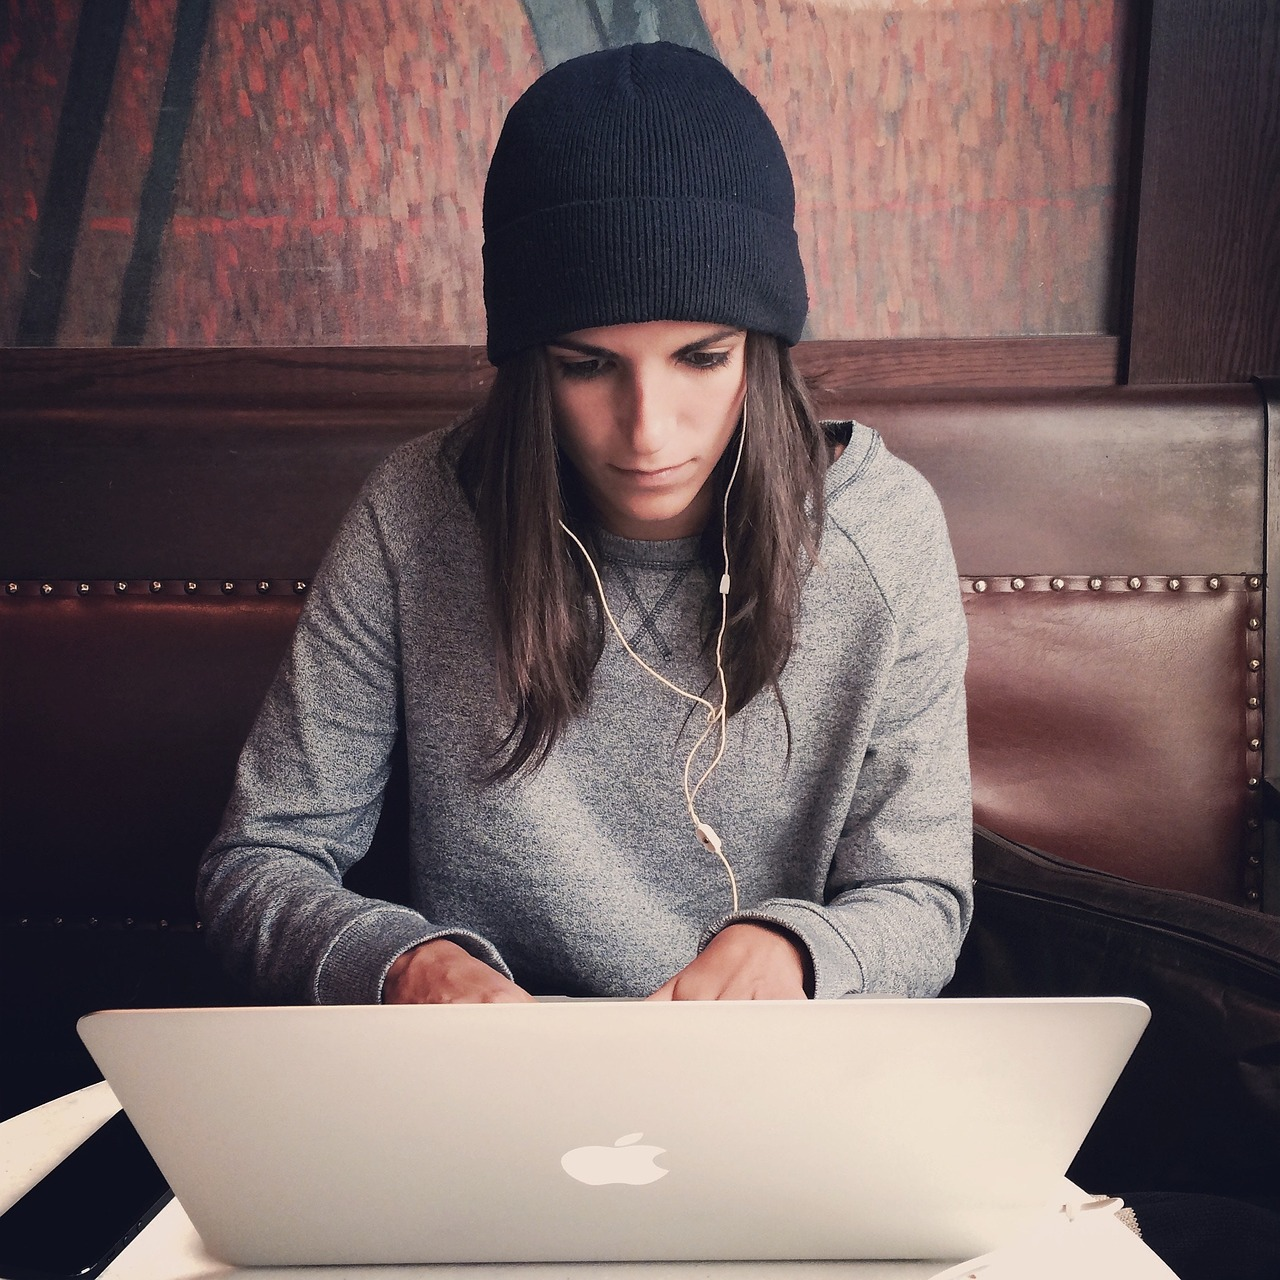 girl-using-a-computer